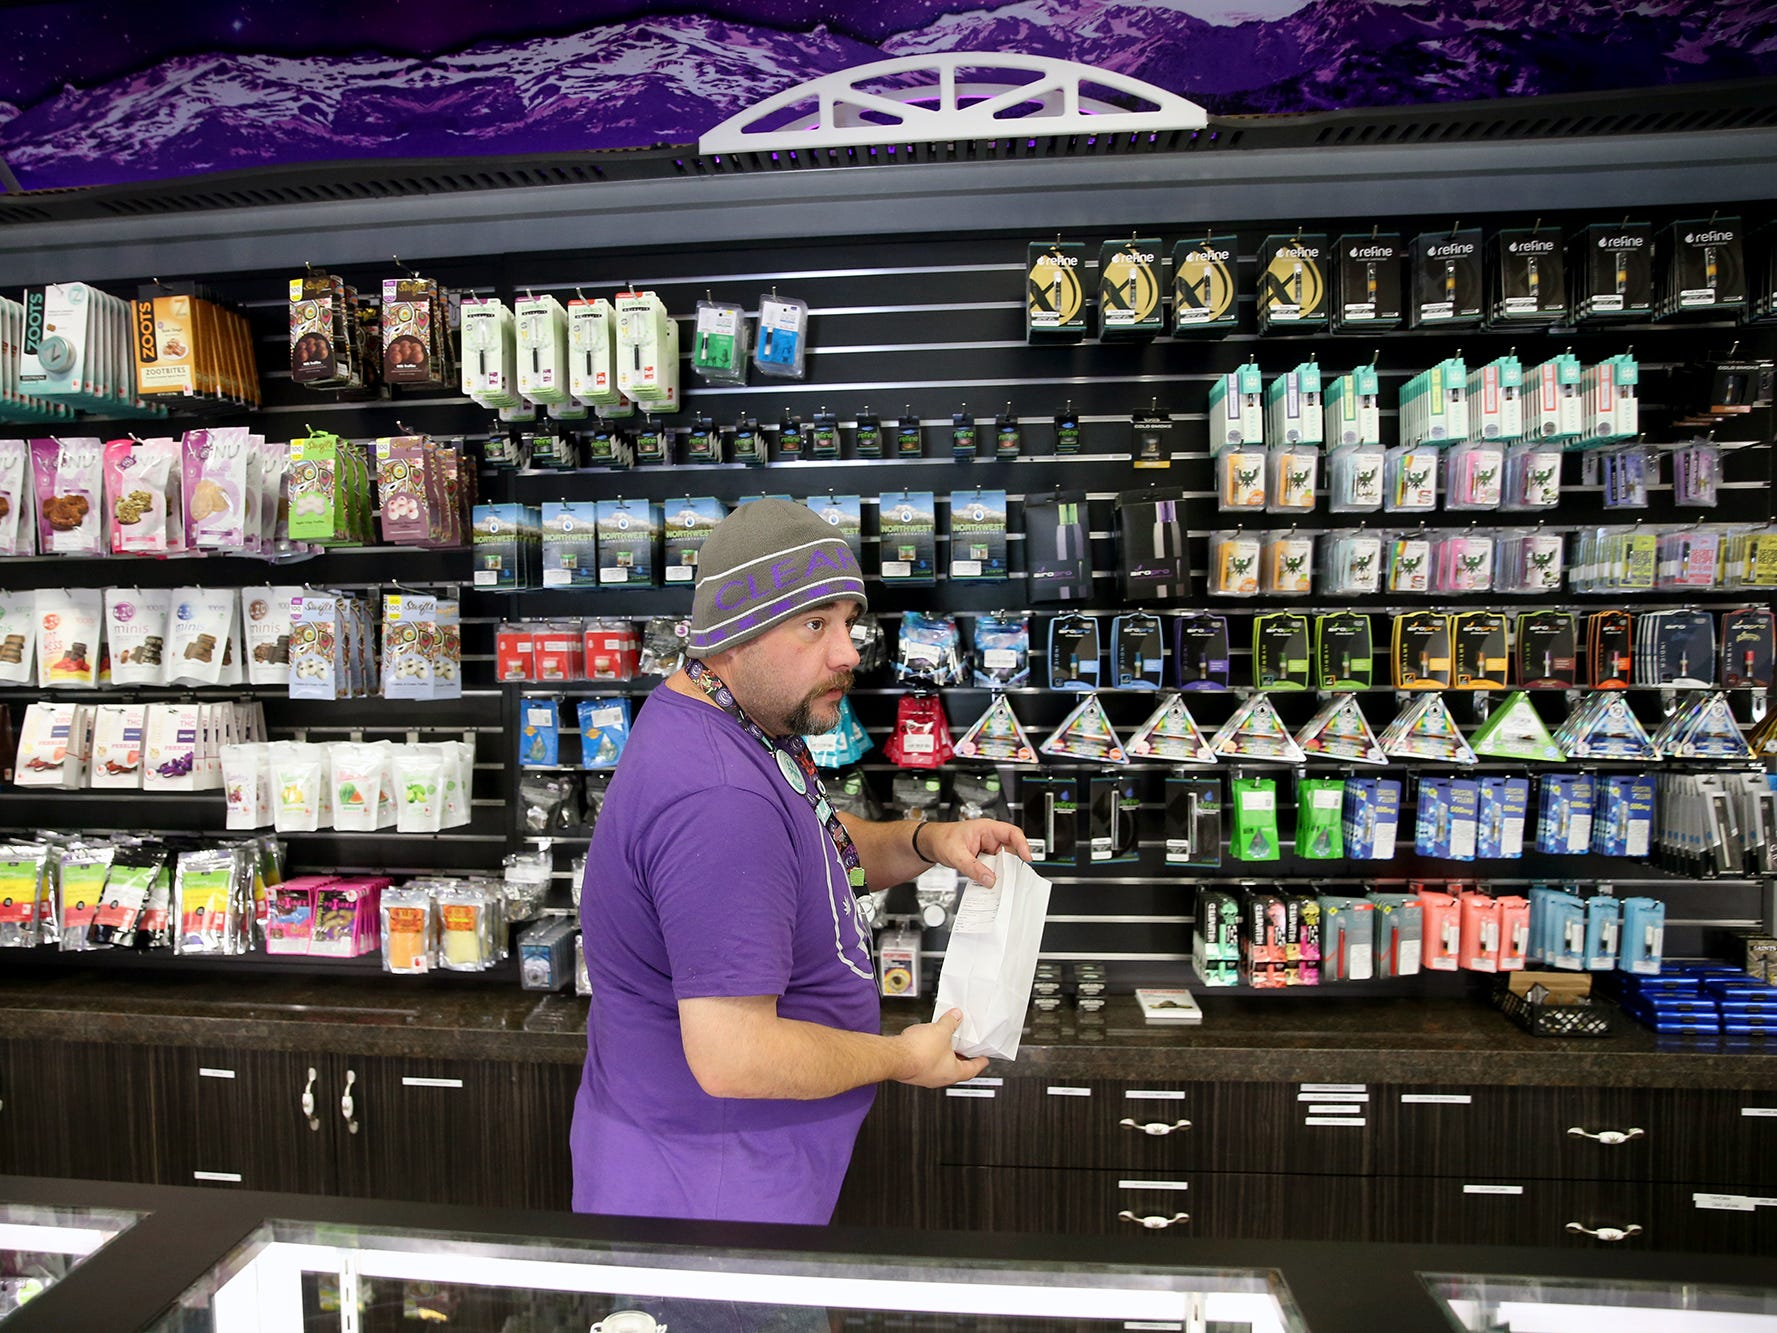 Clear Choice Cannabis in East Bremerton on Highway 303 bud tender Luc Martin fills a customer's order on Monday, August 27, 2018.